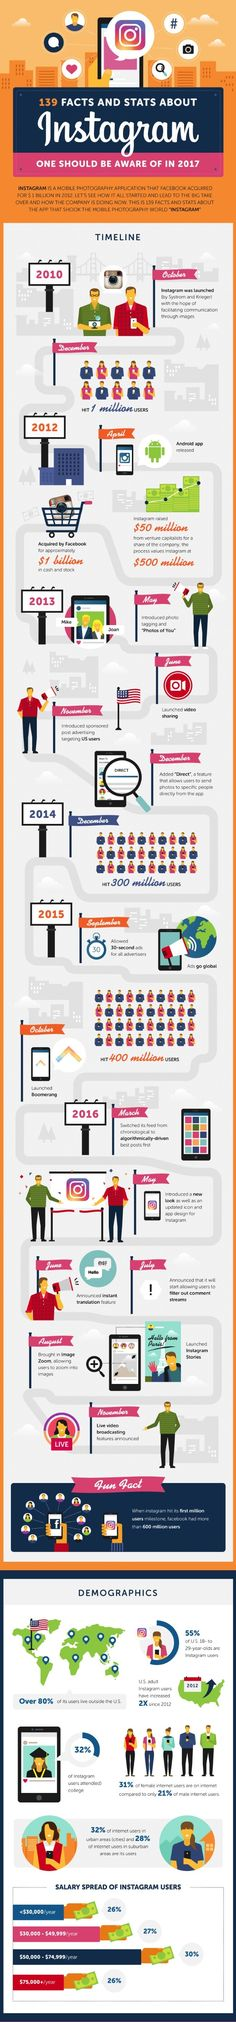 Instagram has come a long way since it launched in 2010 and was acquired by Facebook in 2012.